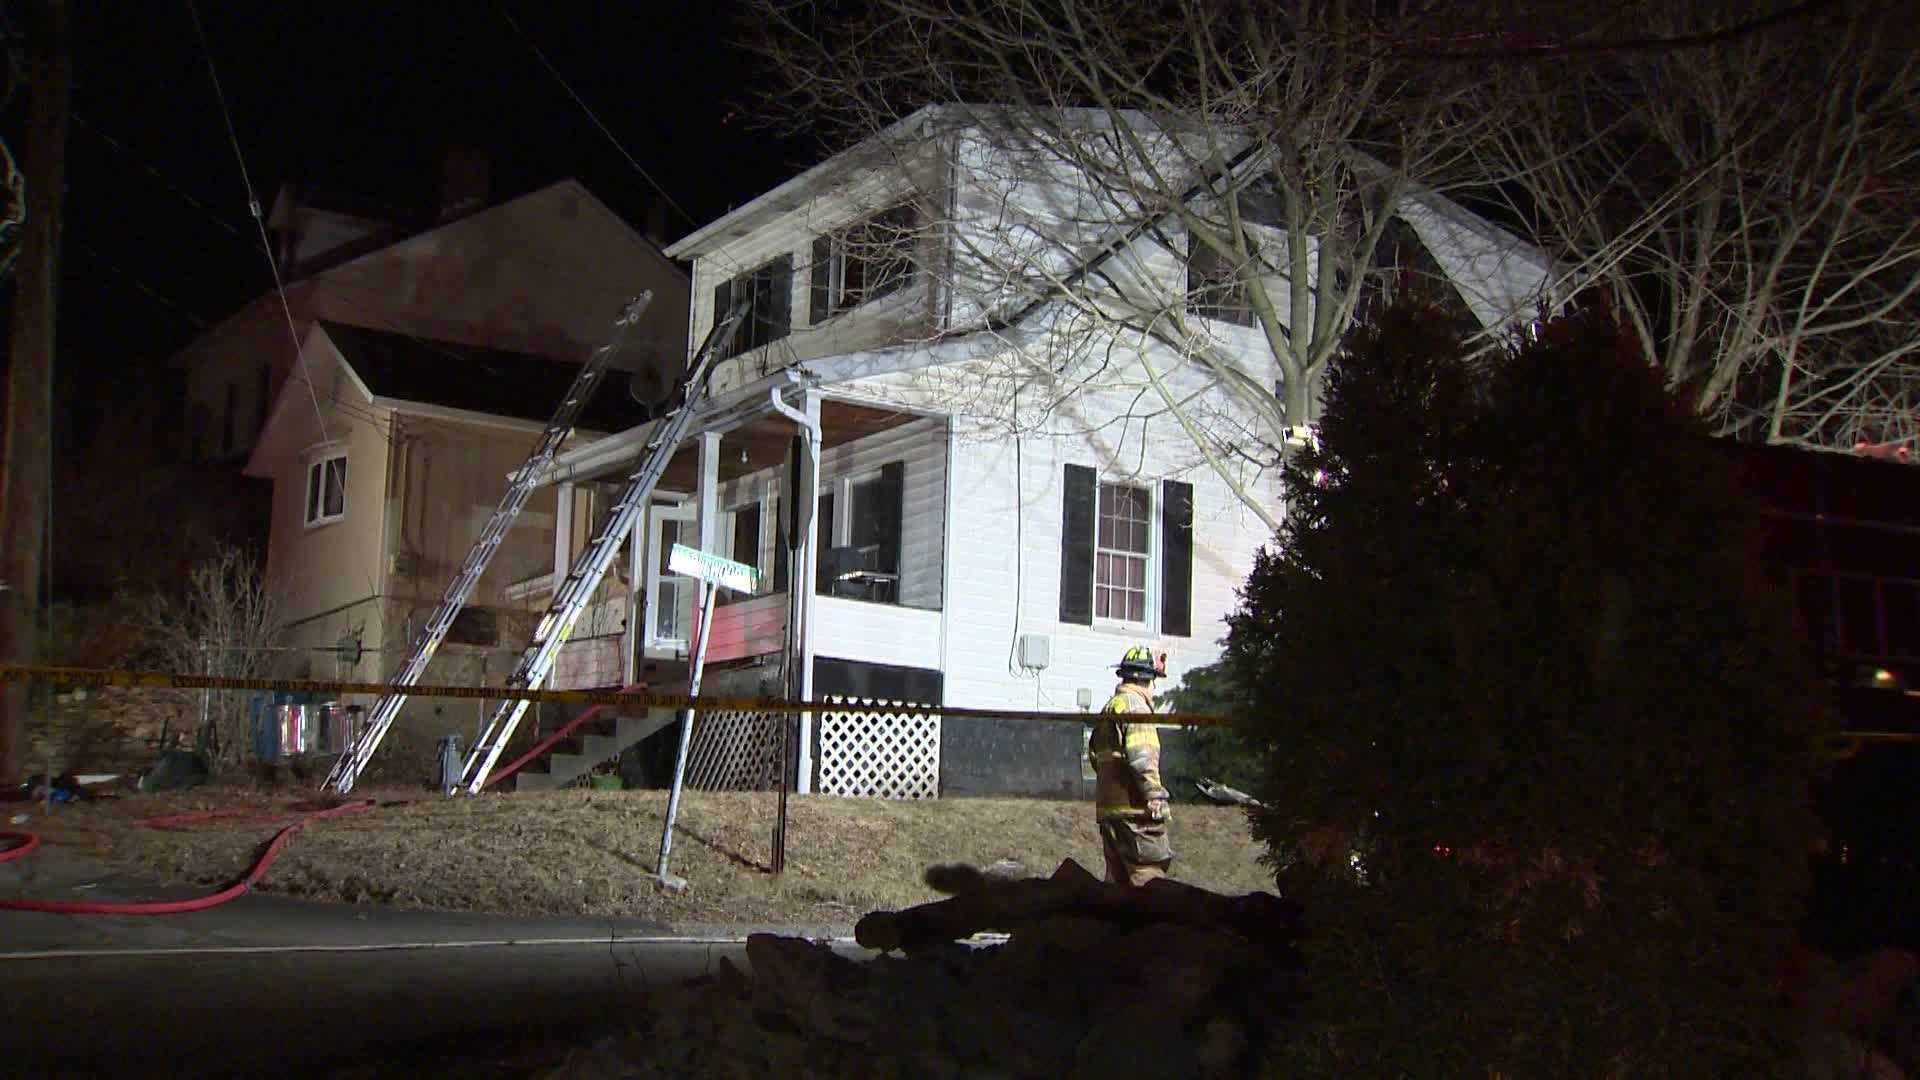 One person was taken to a hospital after a fire on Convent Avenue in Shaler Township early Monday morning.